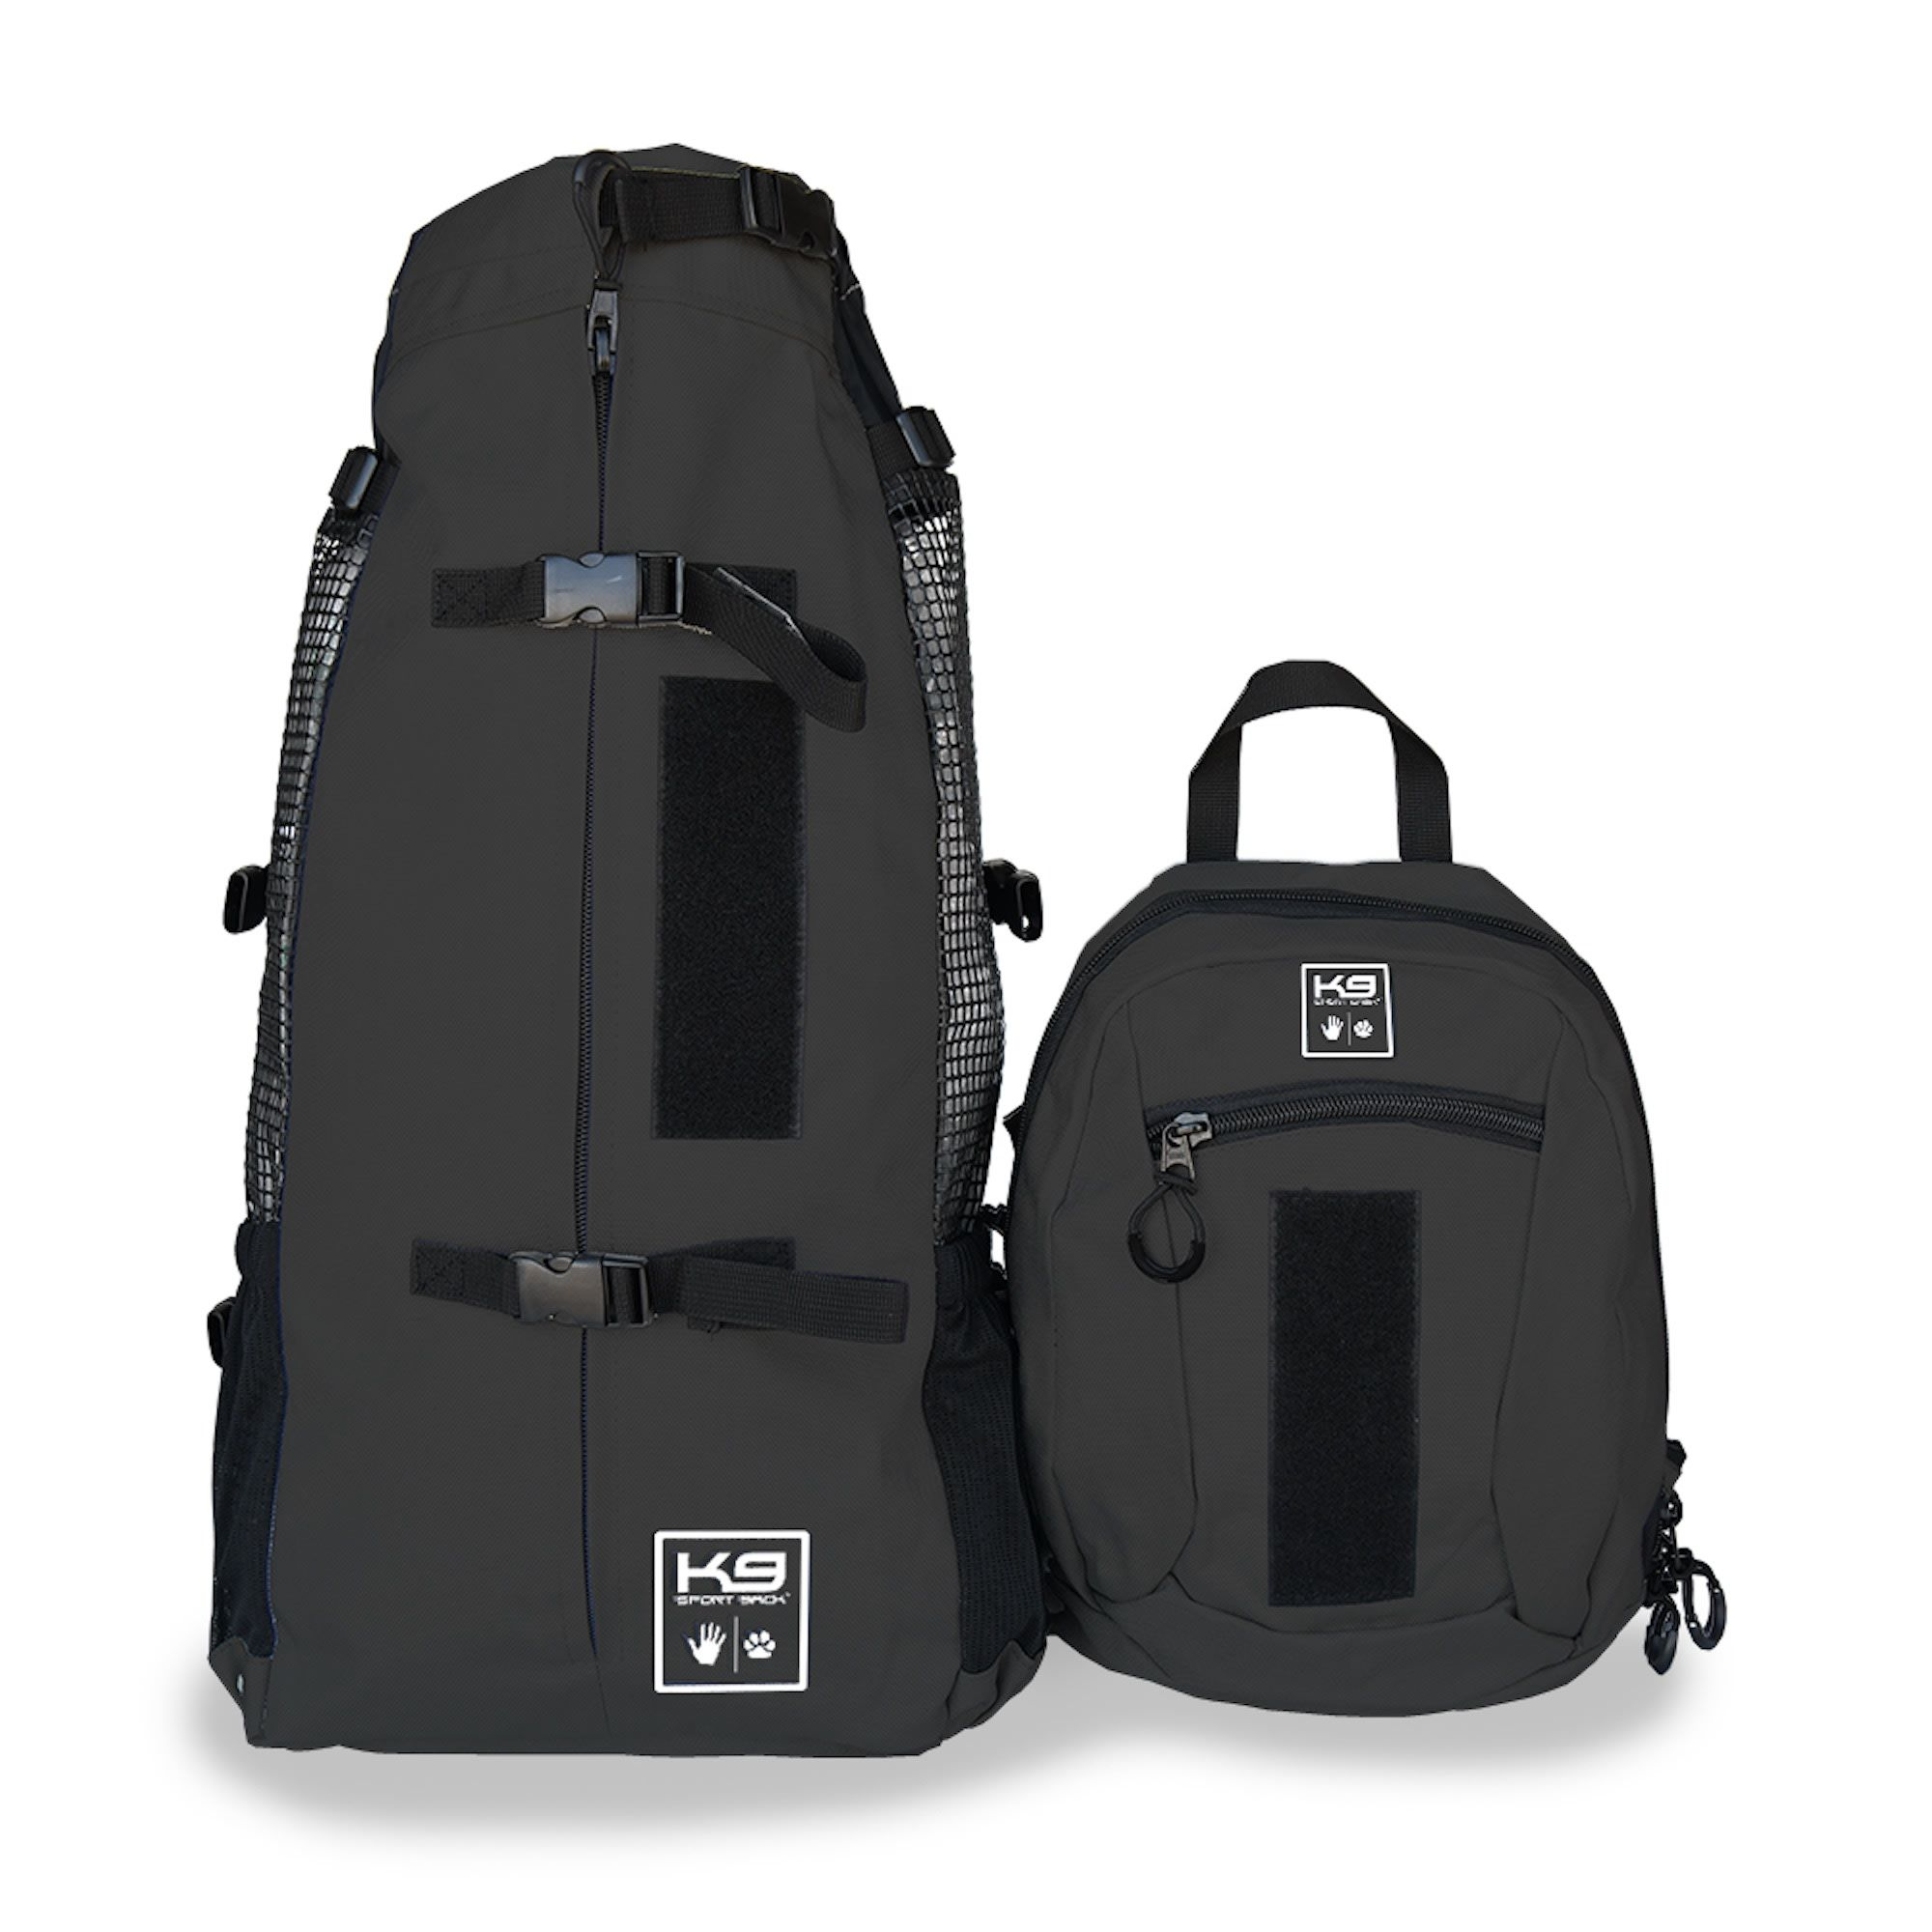 K9 Sport Sack Air Plus Black Backpack Pet Carrier With